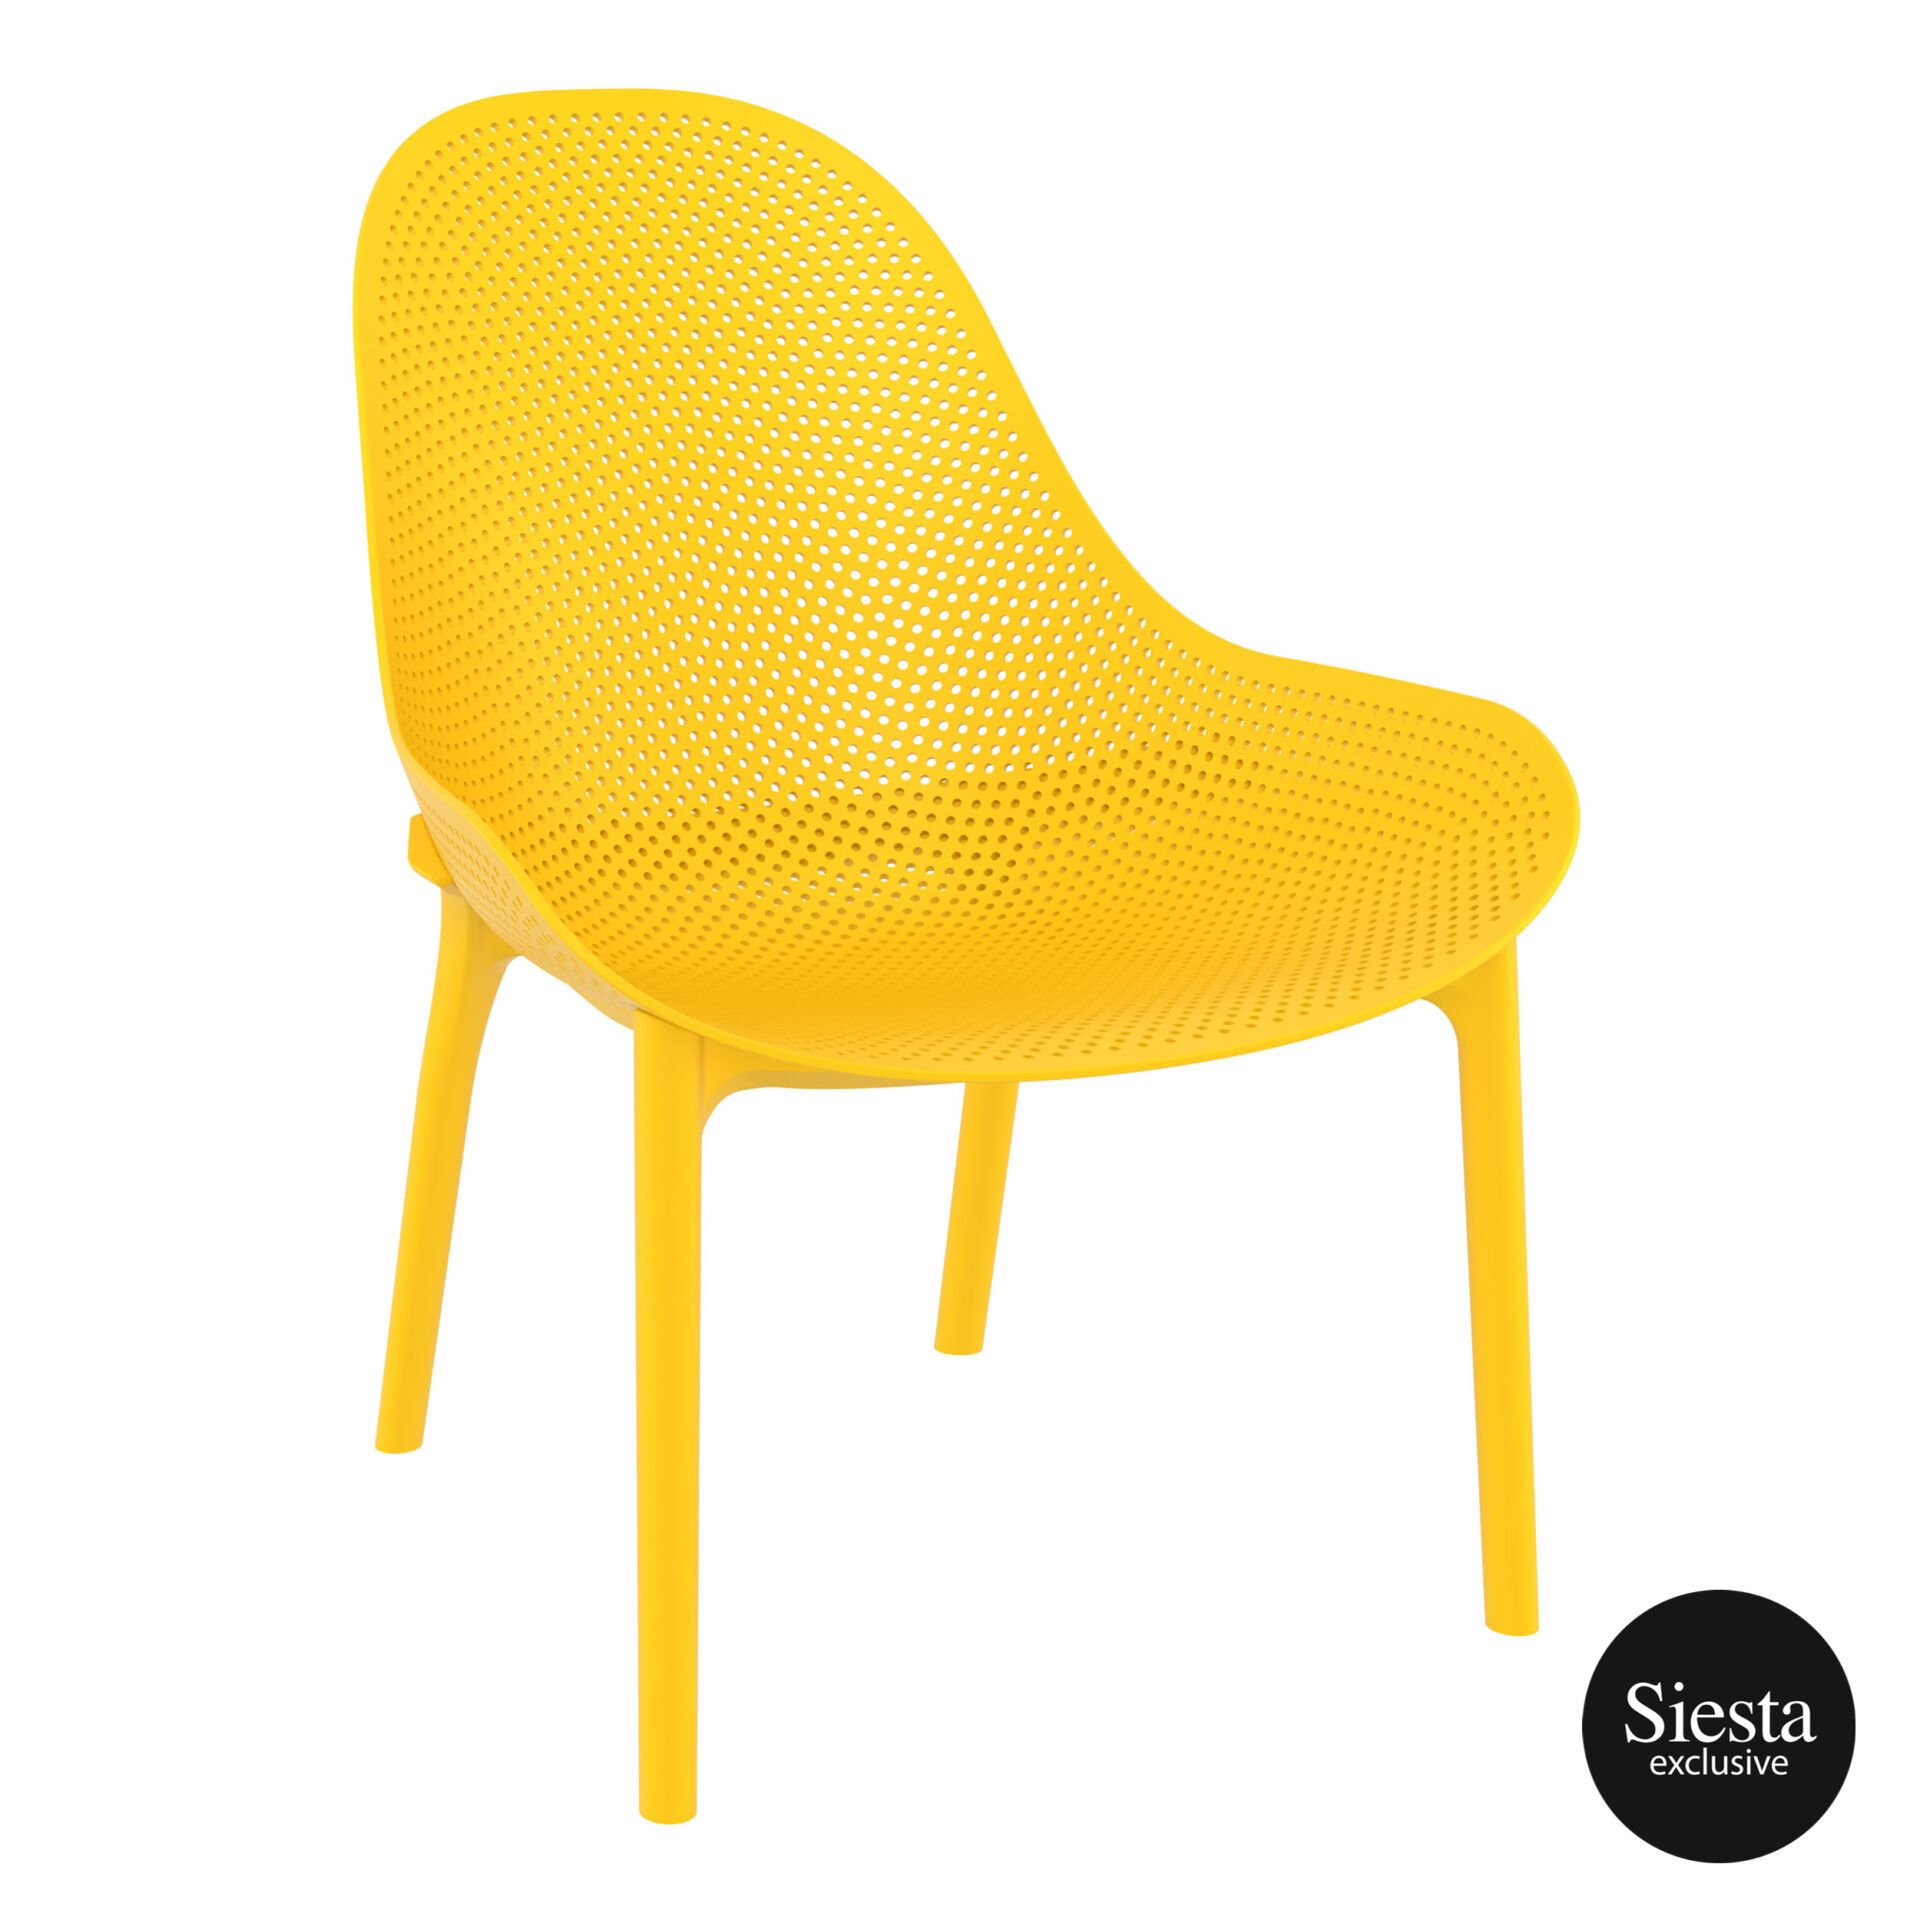 outdoor seating polypropylene sky lounge yellow front side 1